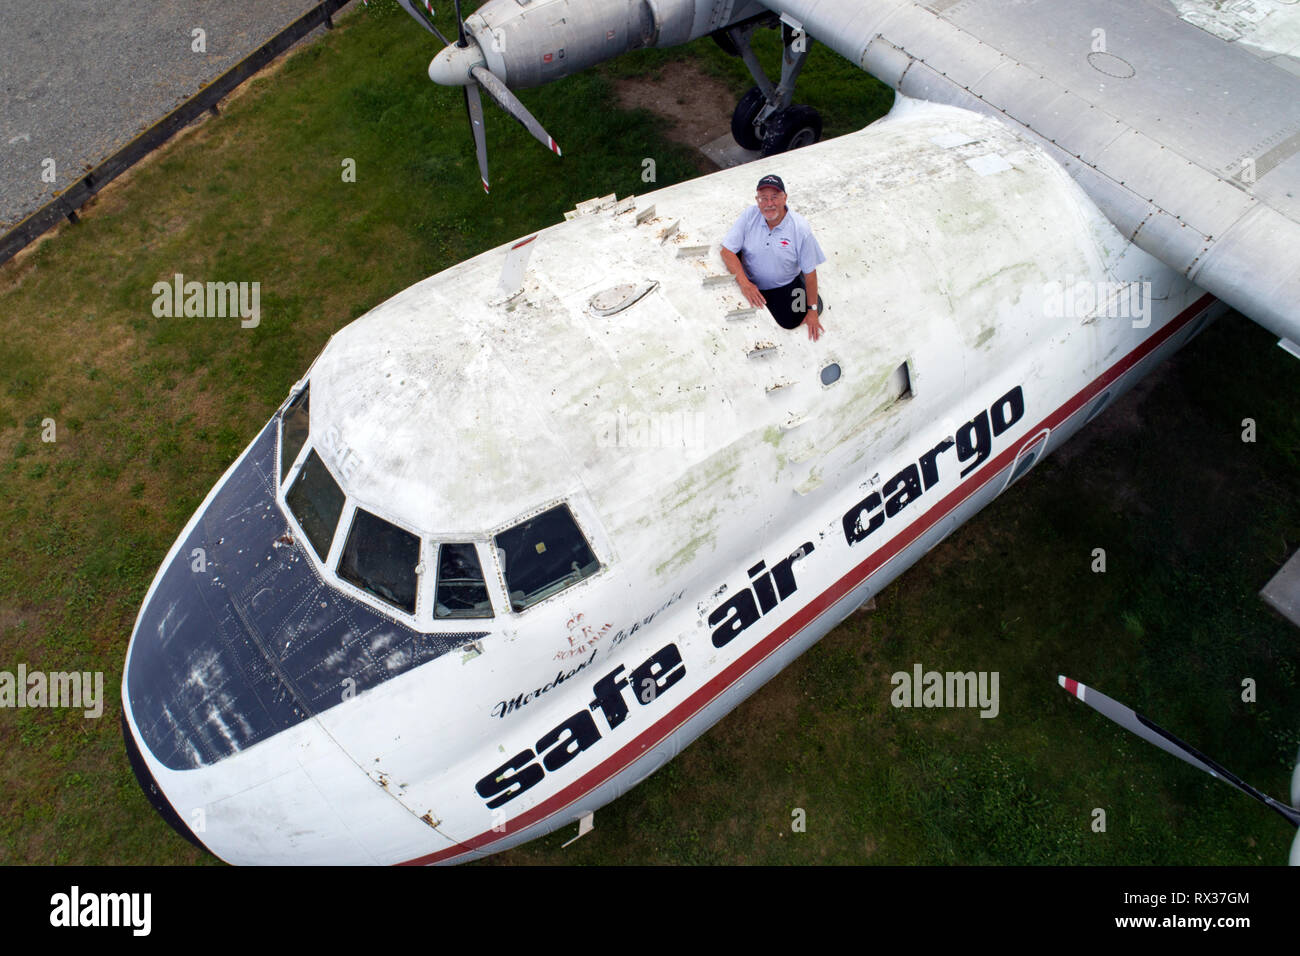 Paul Davidson with Merchant Enterprise, an Argosy aircraft that had a close encounter with a UFO in 1978 - Stock Image